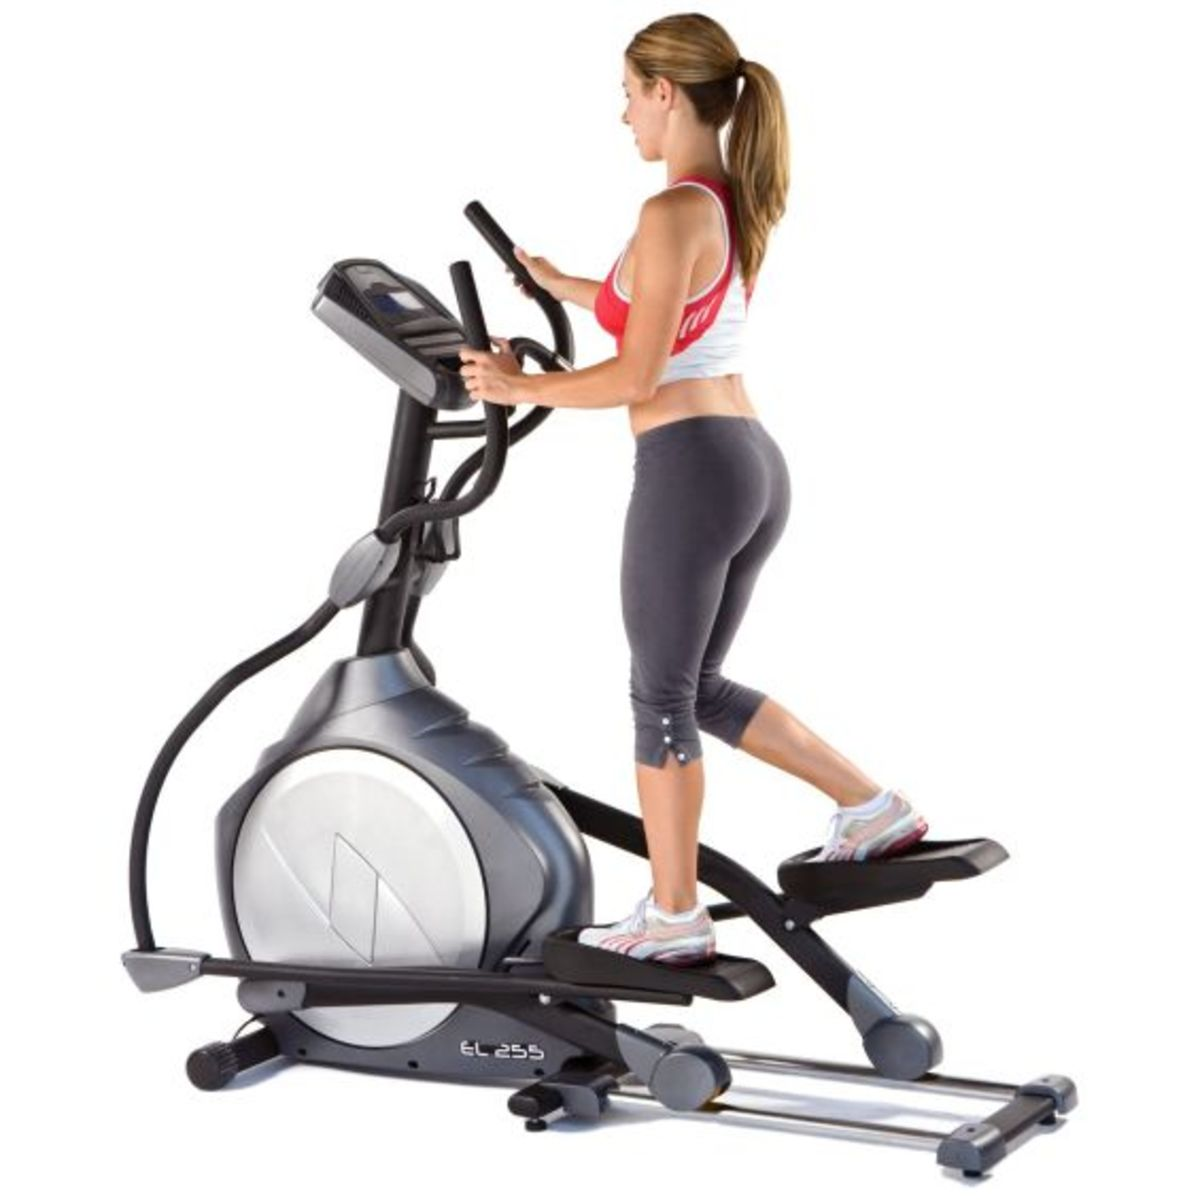 top-5-elliptical-machines-under-1000-for-home-use-reviews-compact-cheap